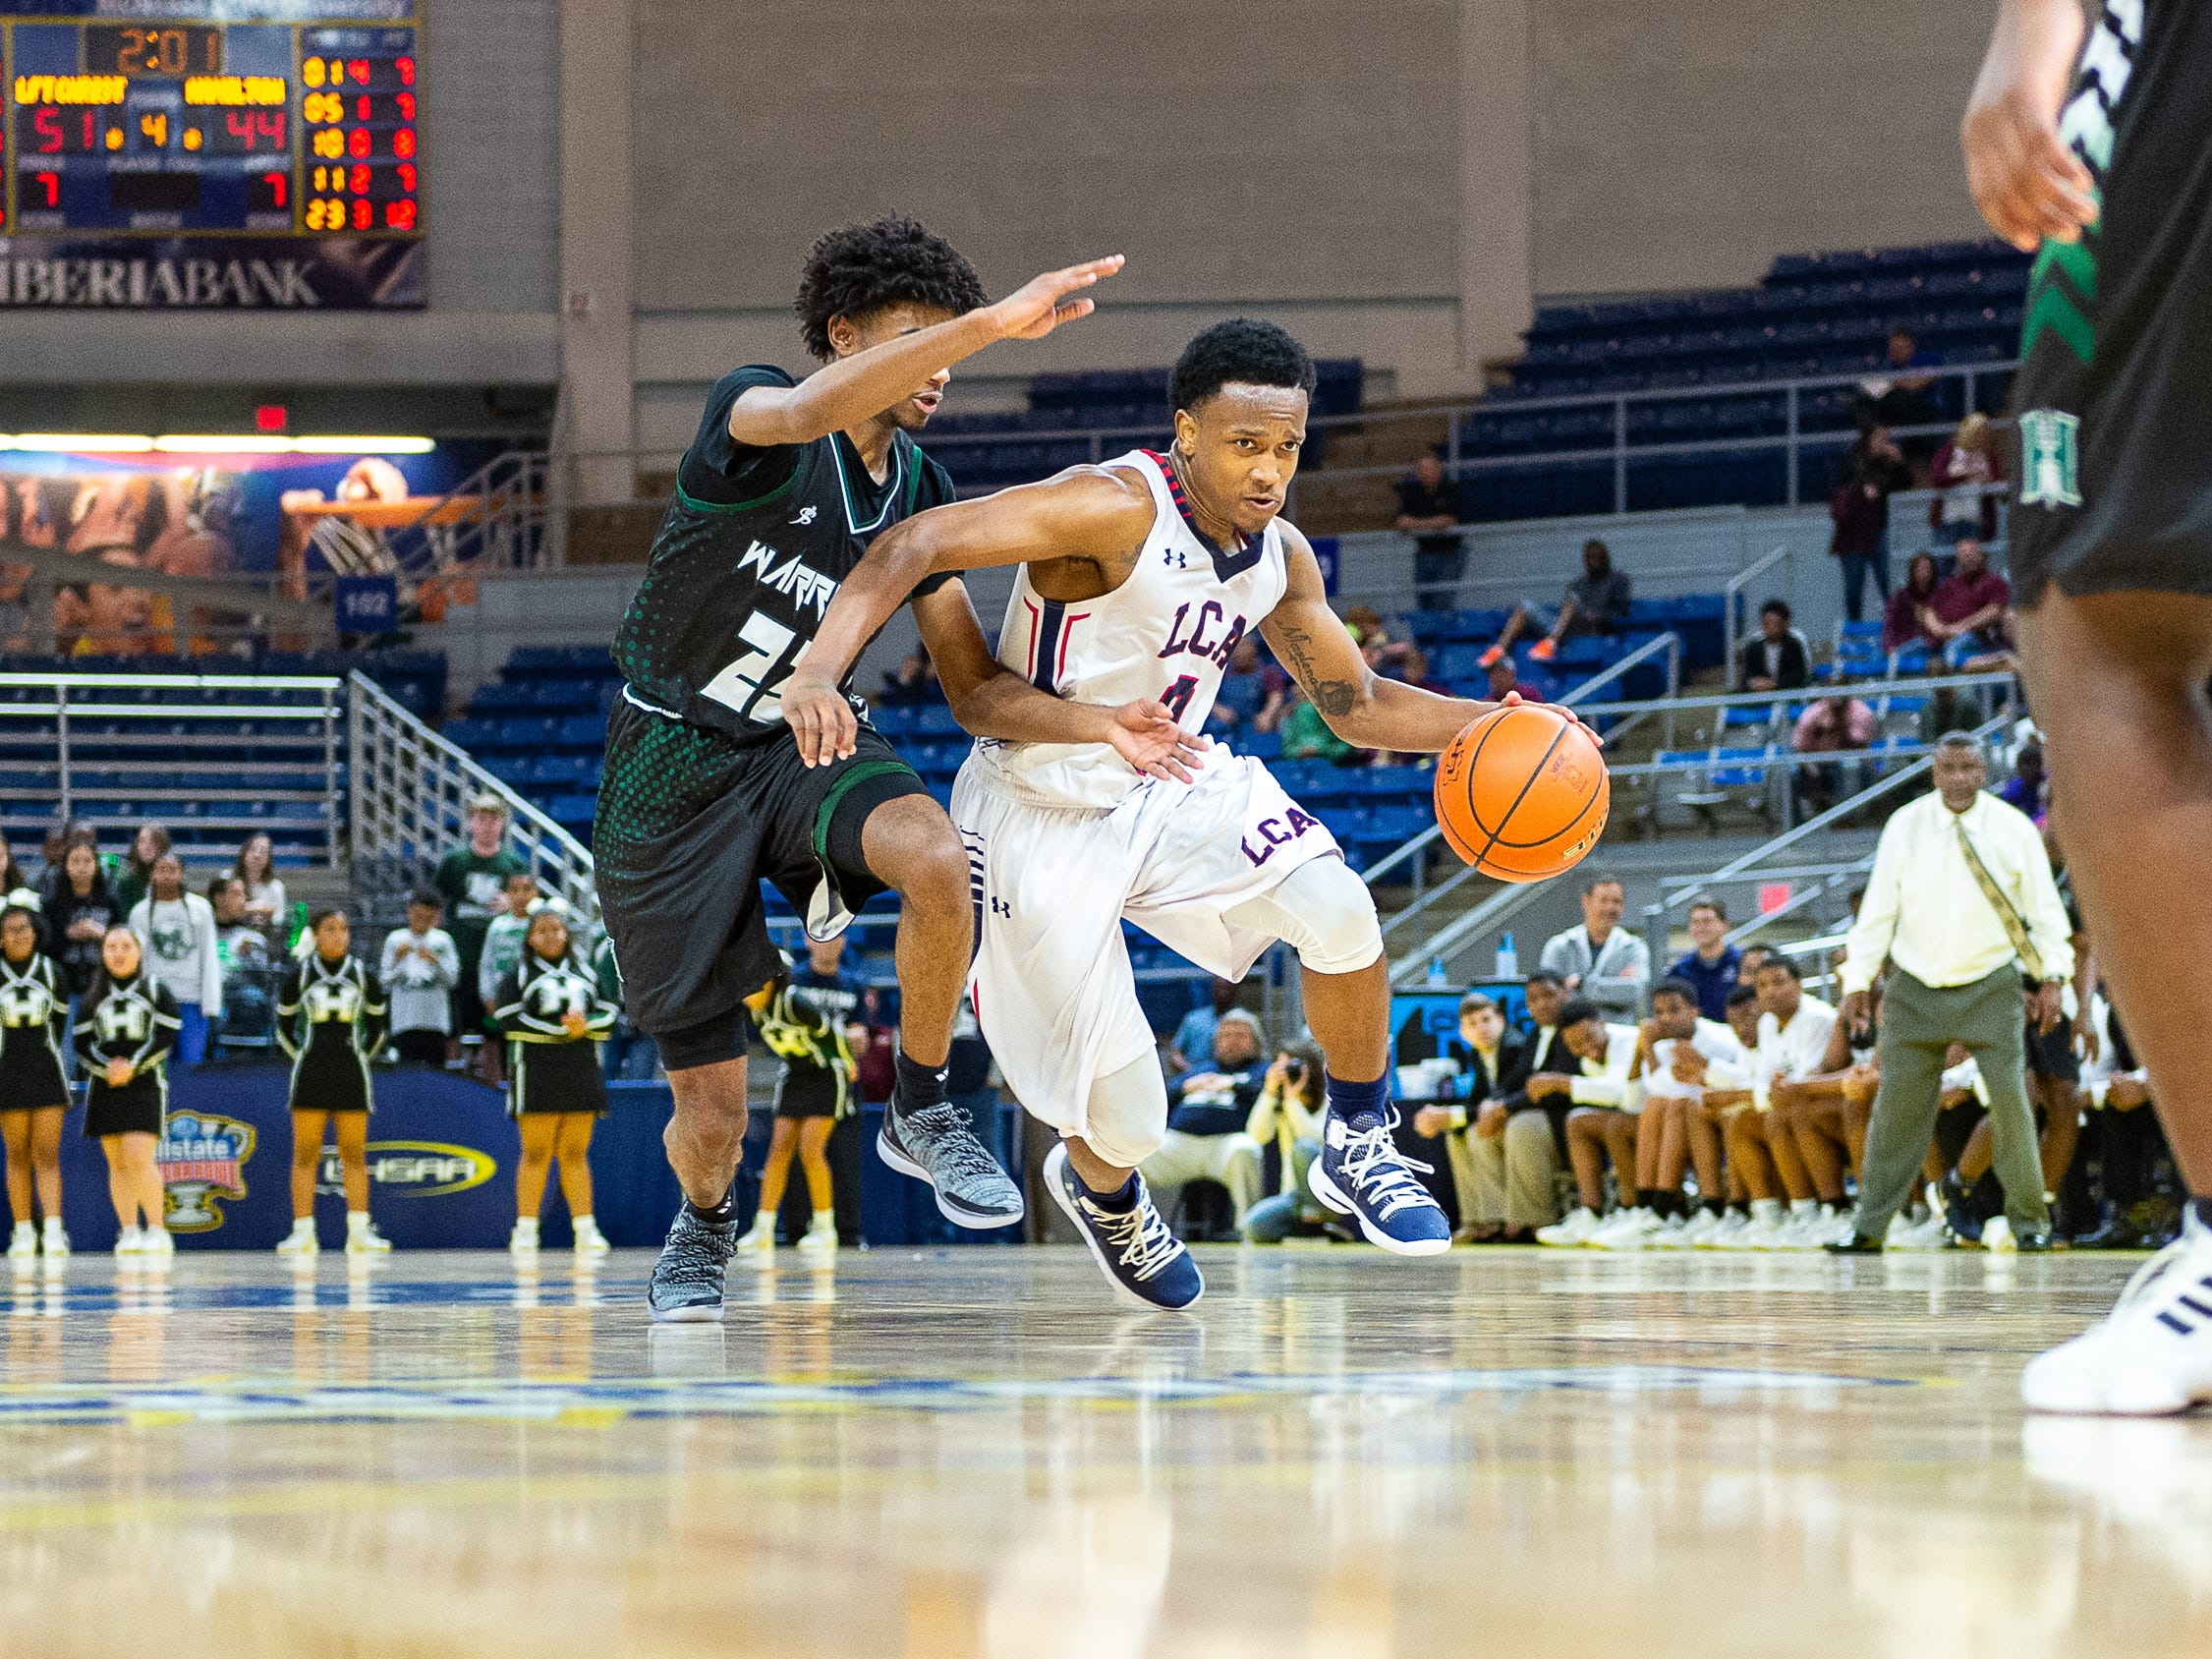 Terrence Jones Jr. drives the ball as Lafayette Christian takes down Hamilton Christian to win the Allstate Sugar Bowl/LHSAA Boys' Marsh Madness State Championship. Friday, March 8, 2019.